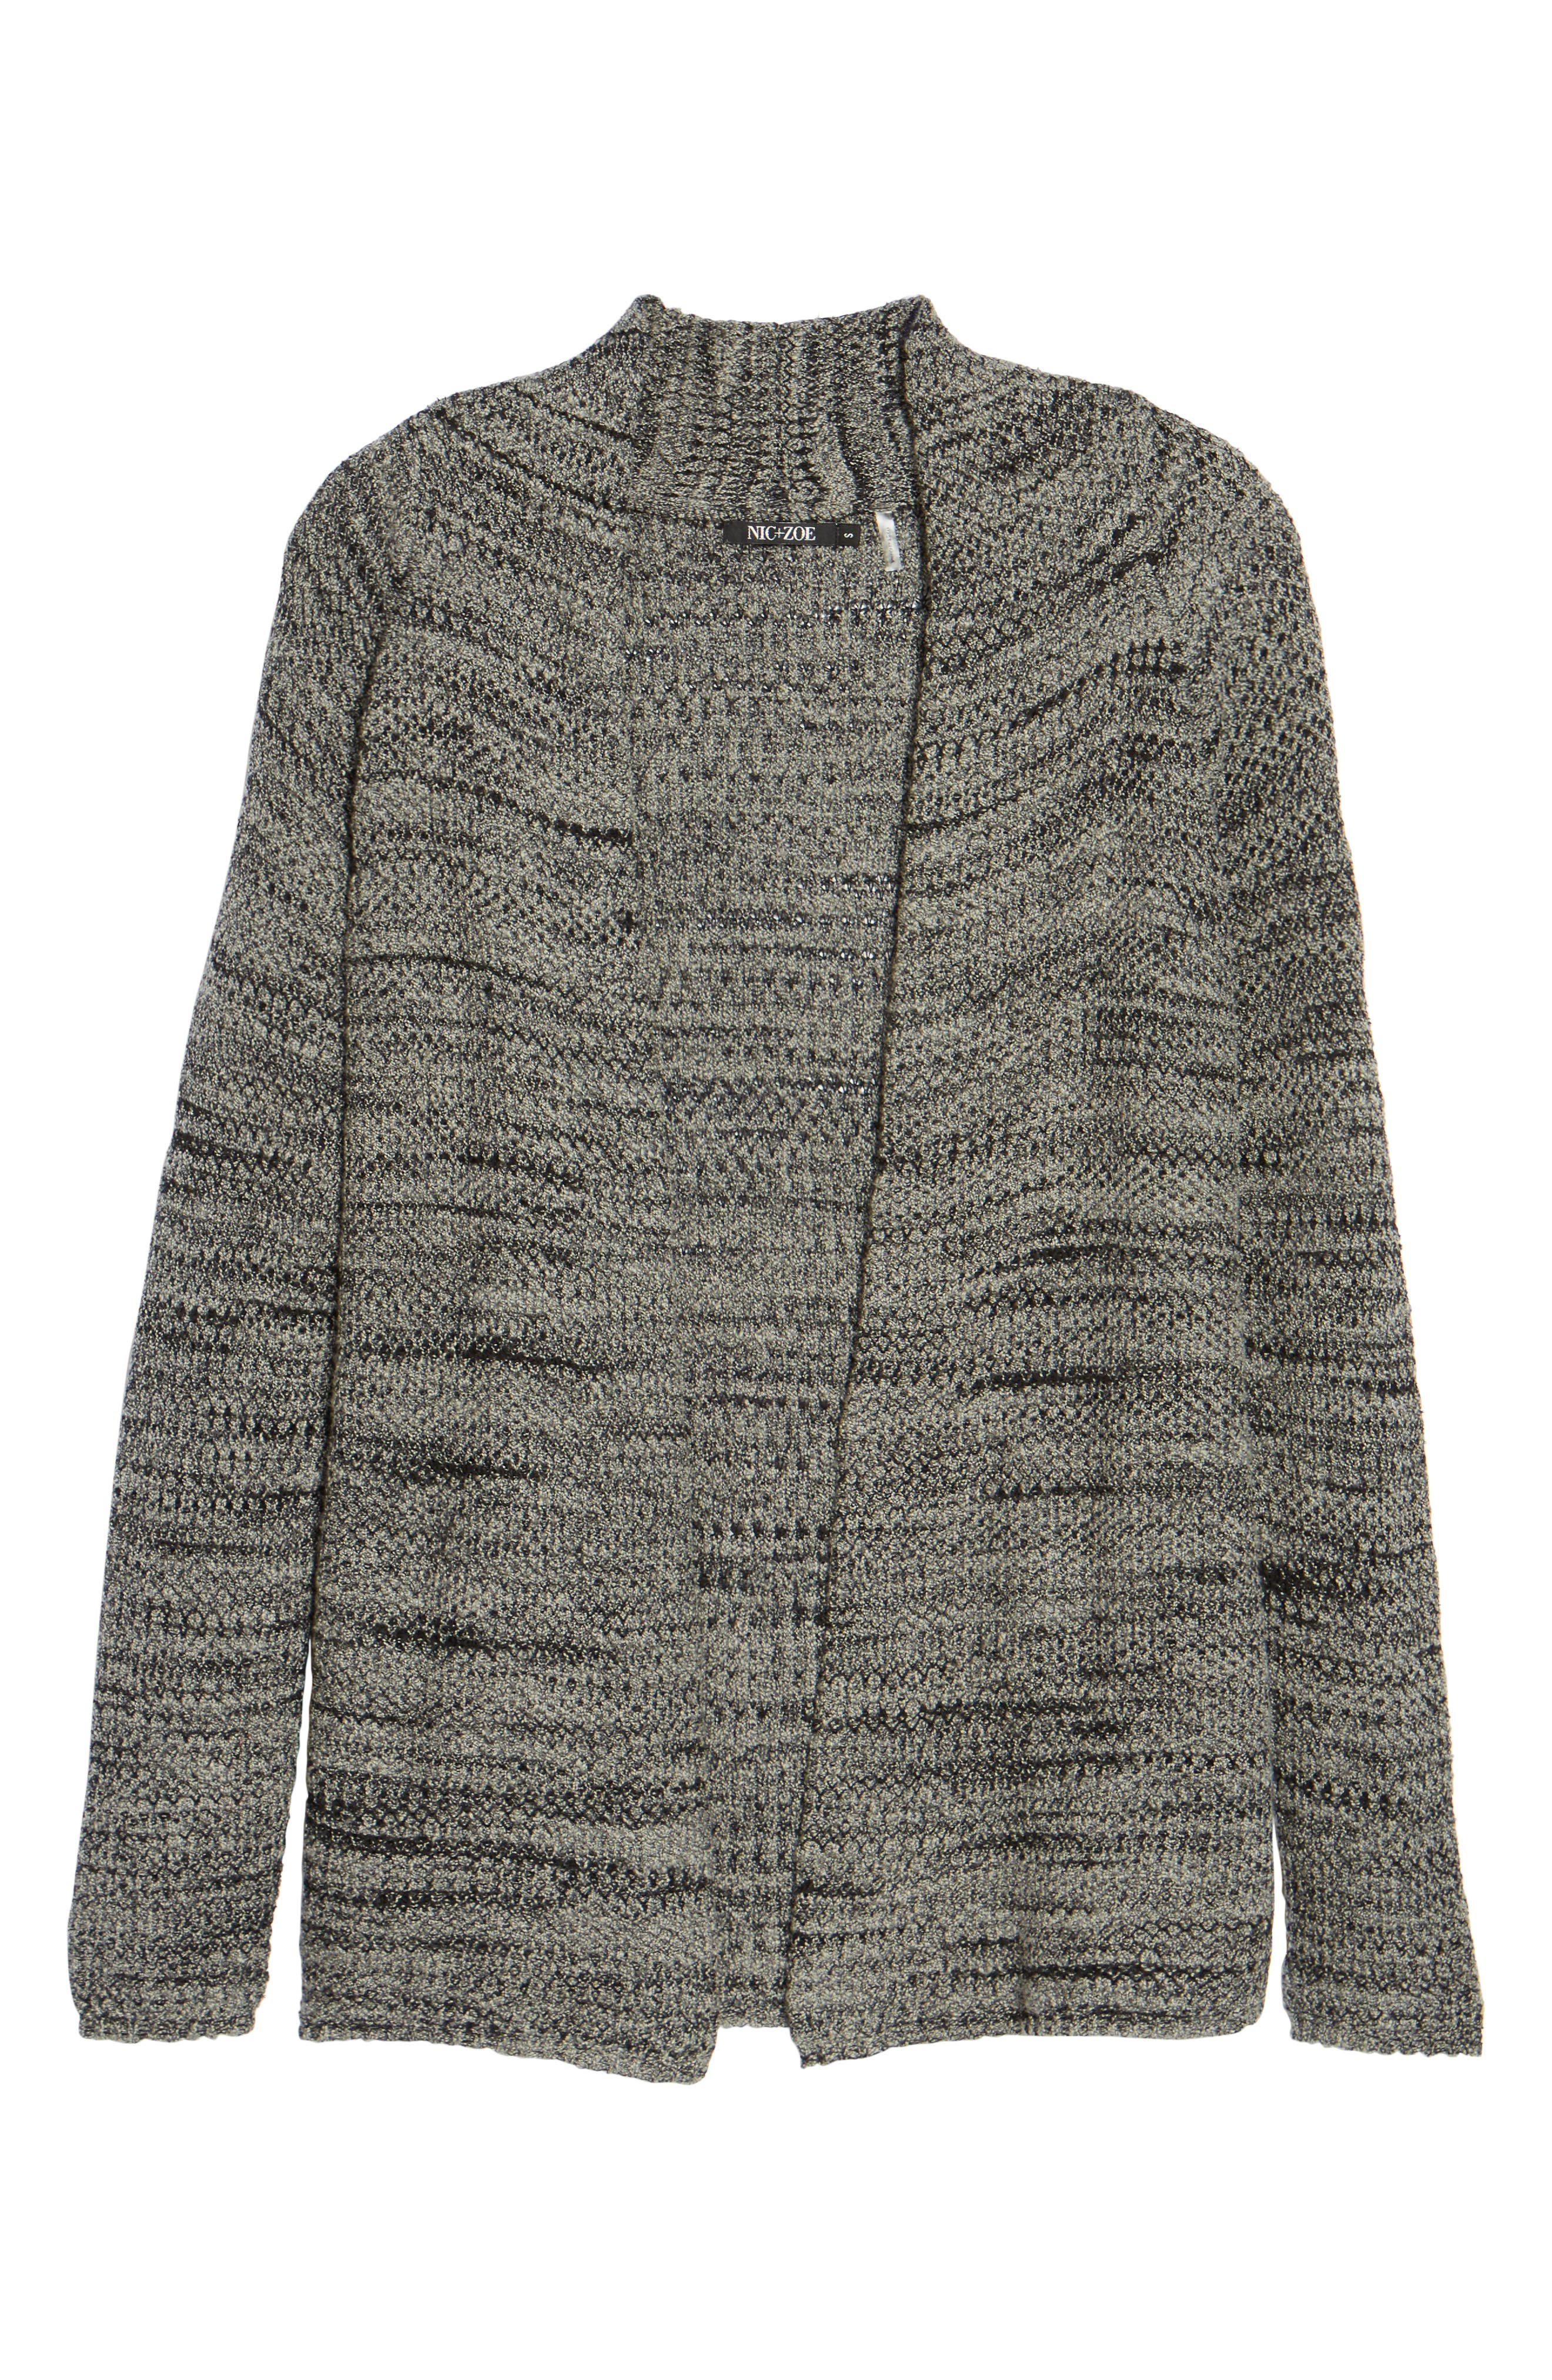 Thick & Thin Cardigan,                             Alternate thumbnail 6, color,                             259